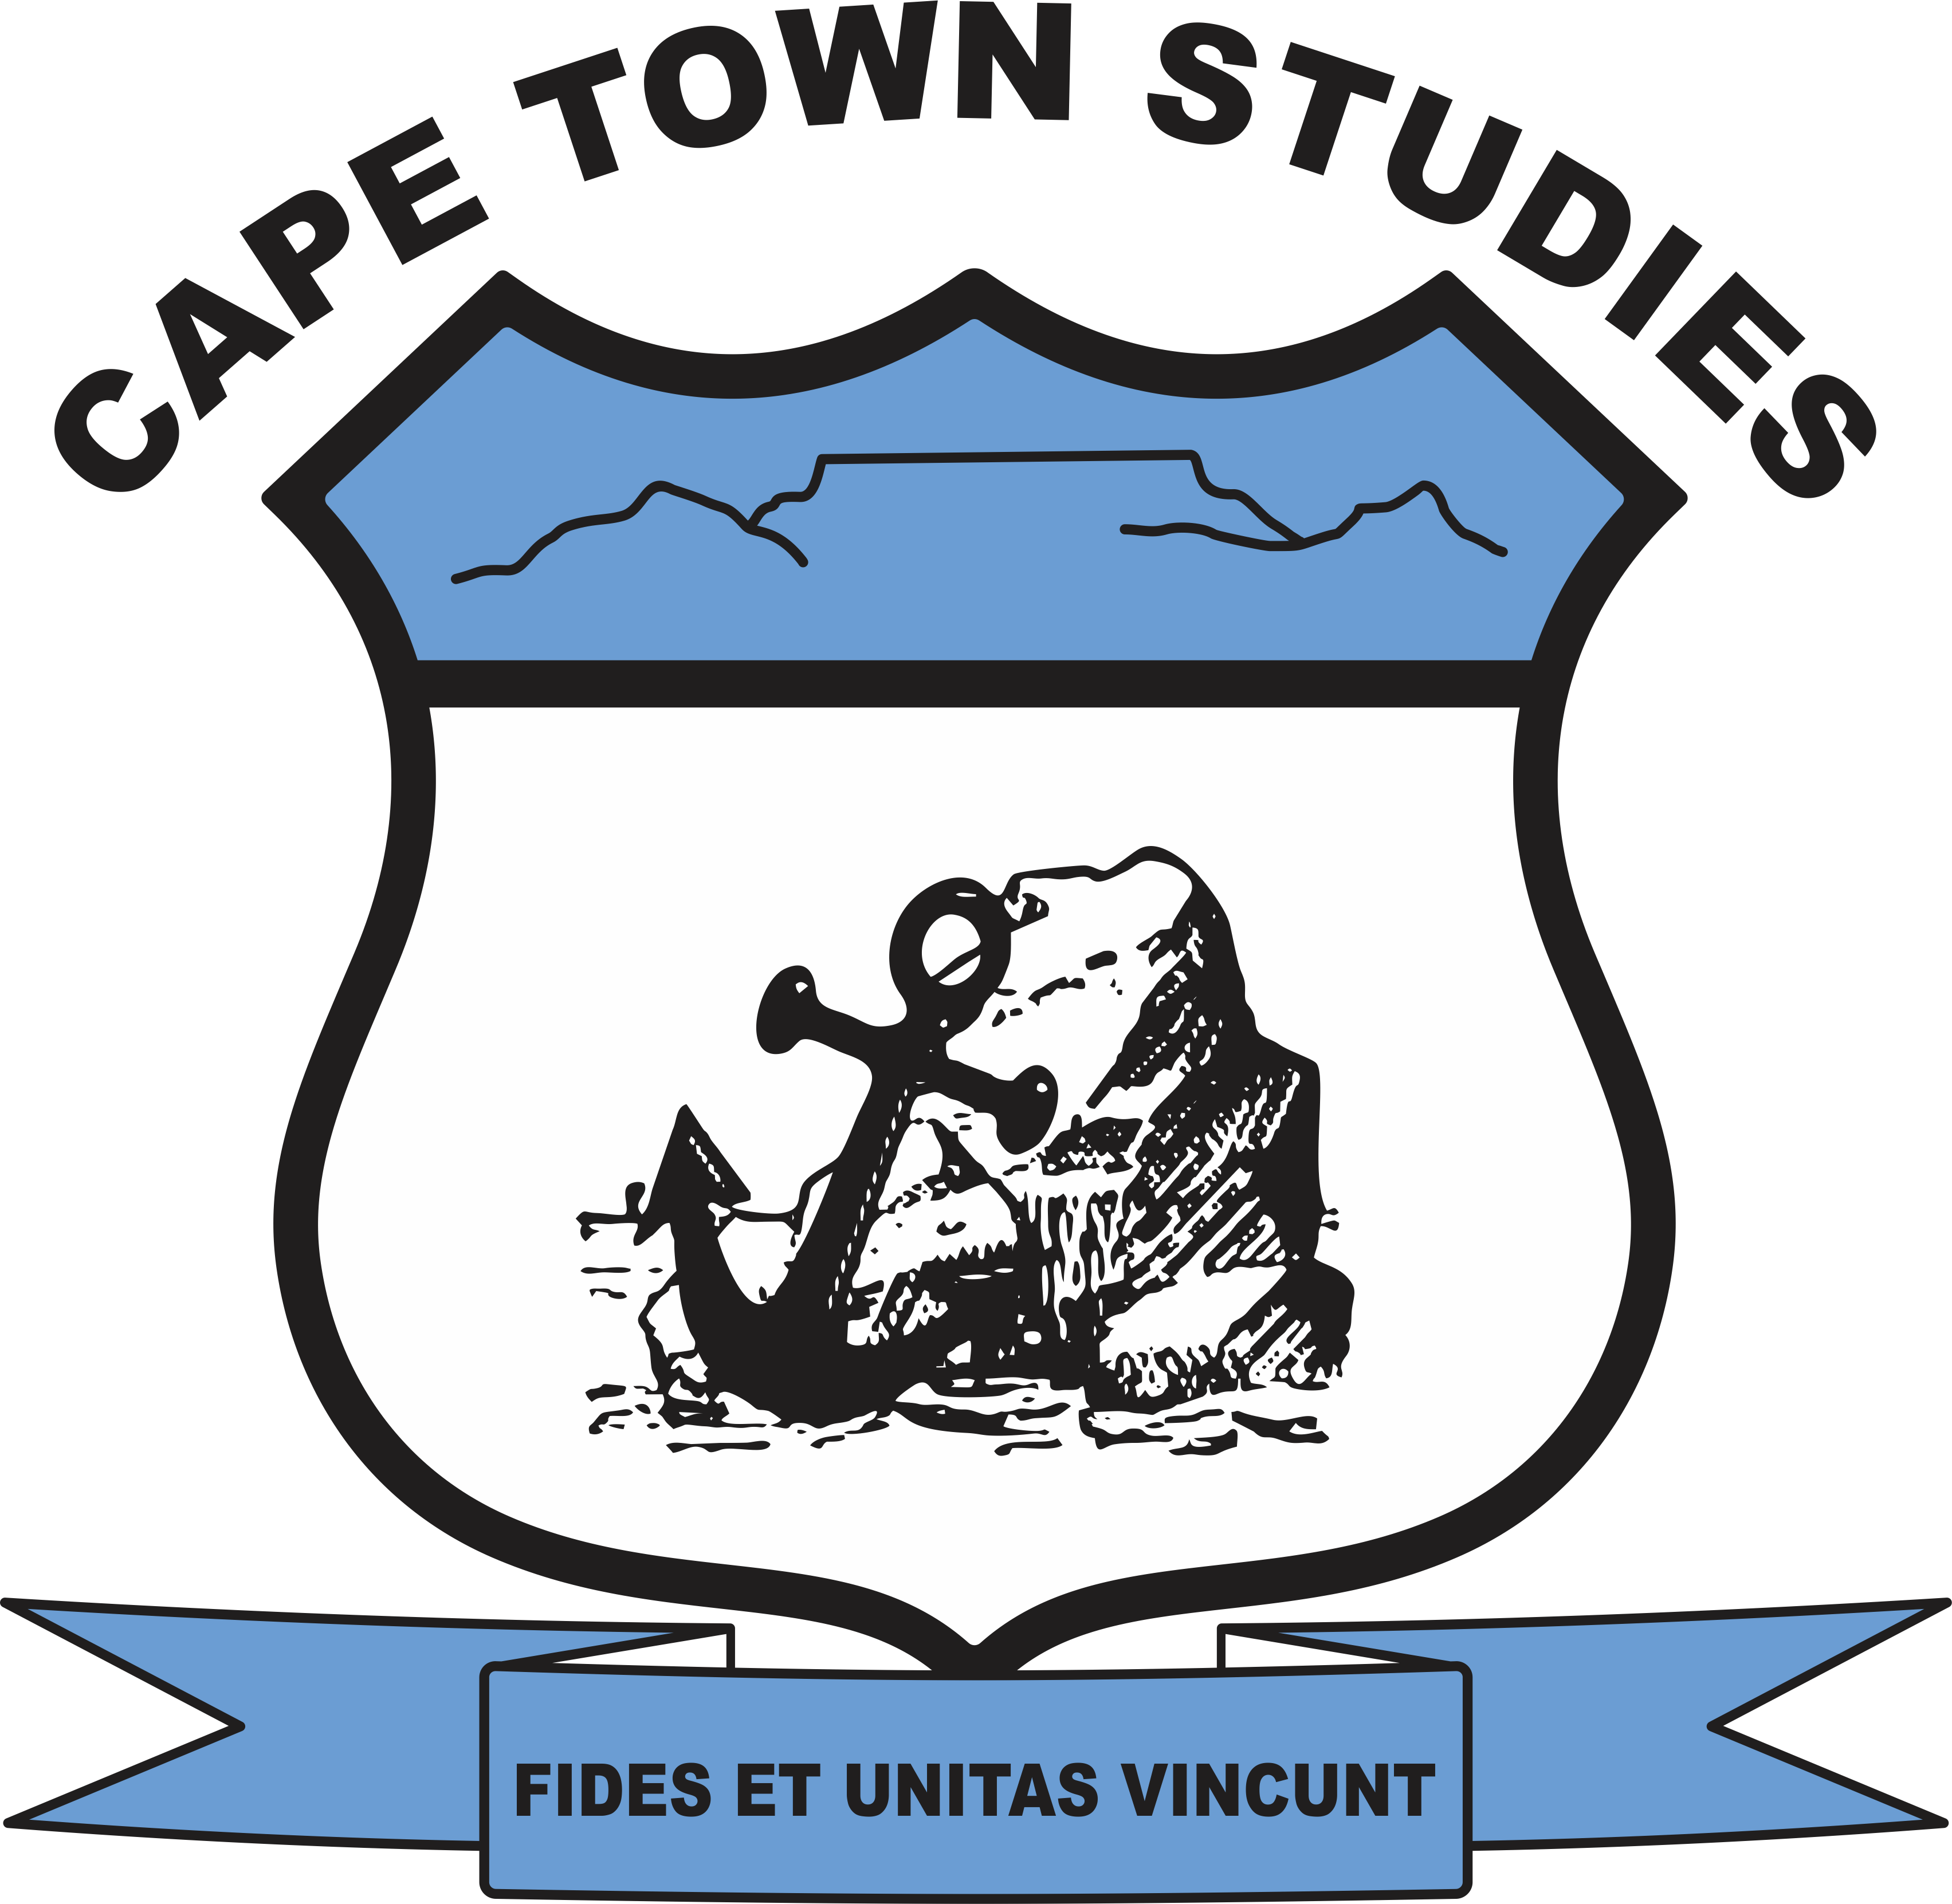 CAPE TOWN STUDIES PRIVATE HIGH SCHOOL